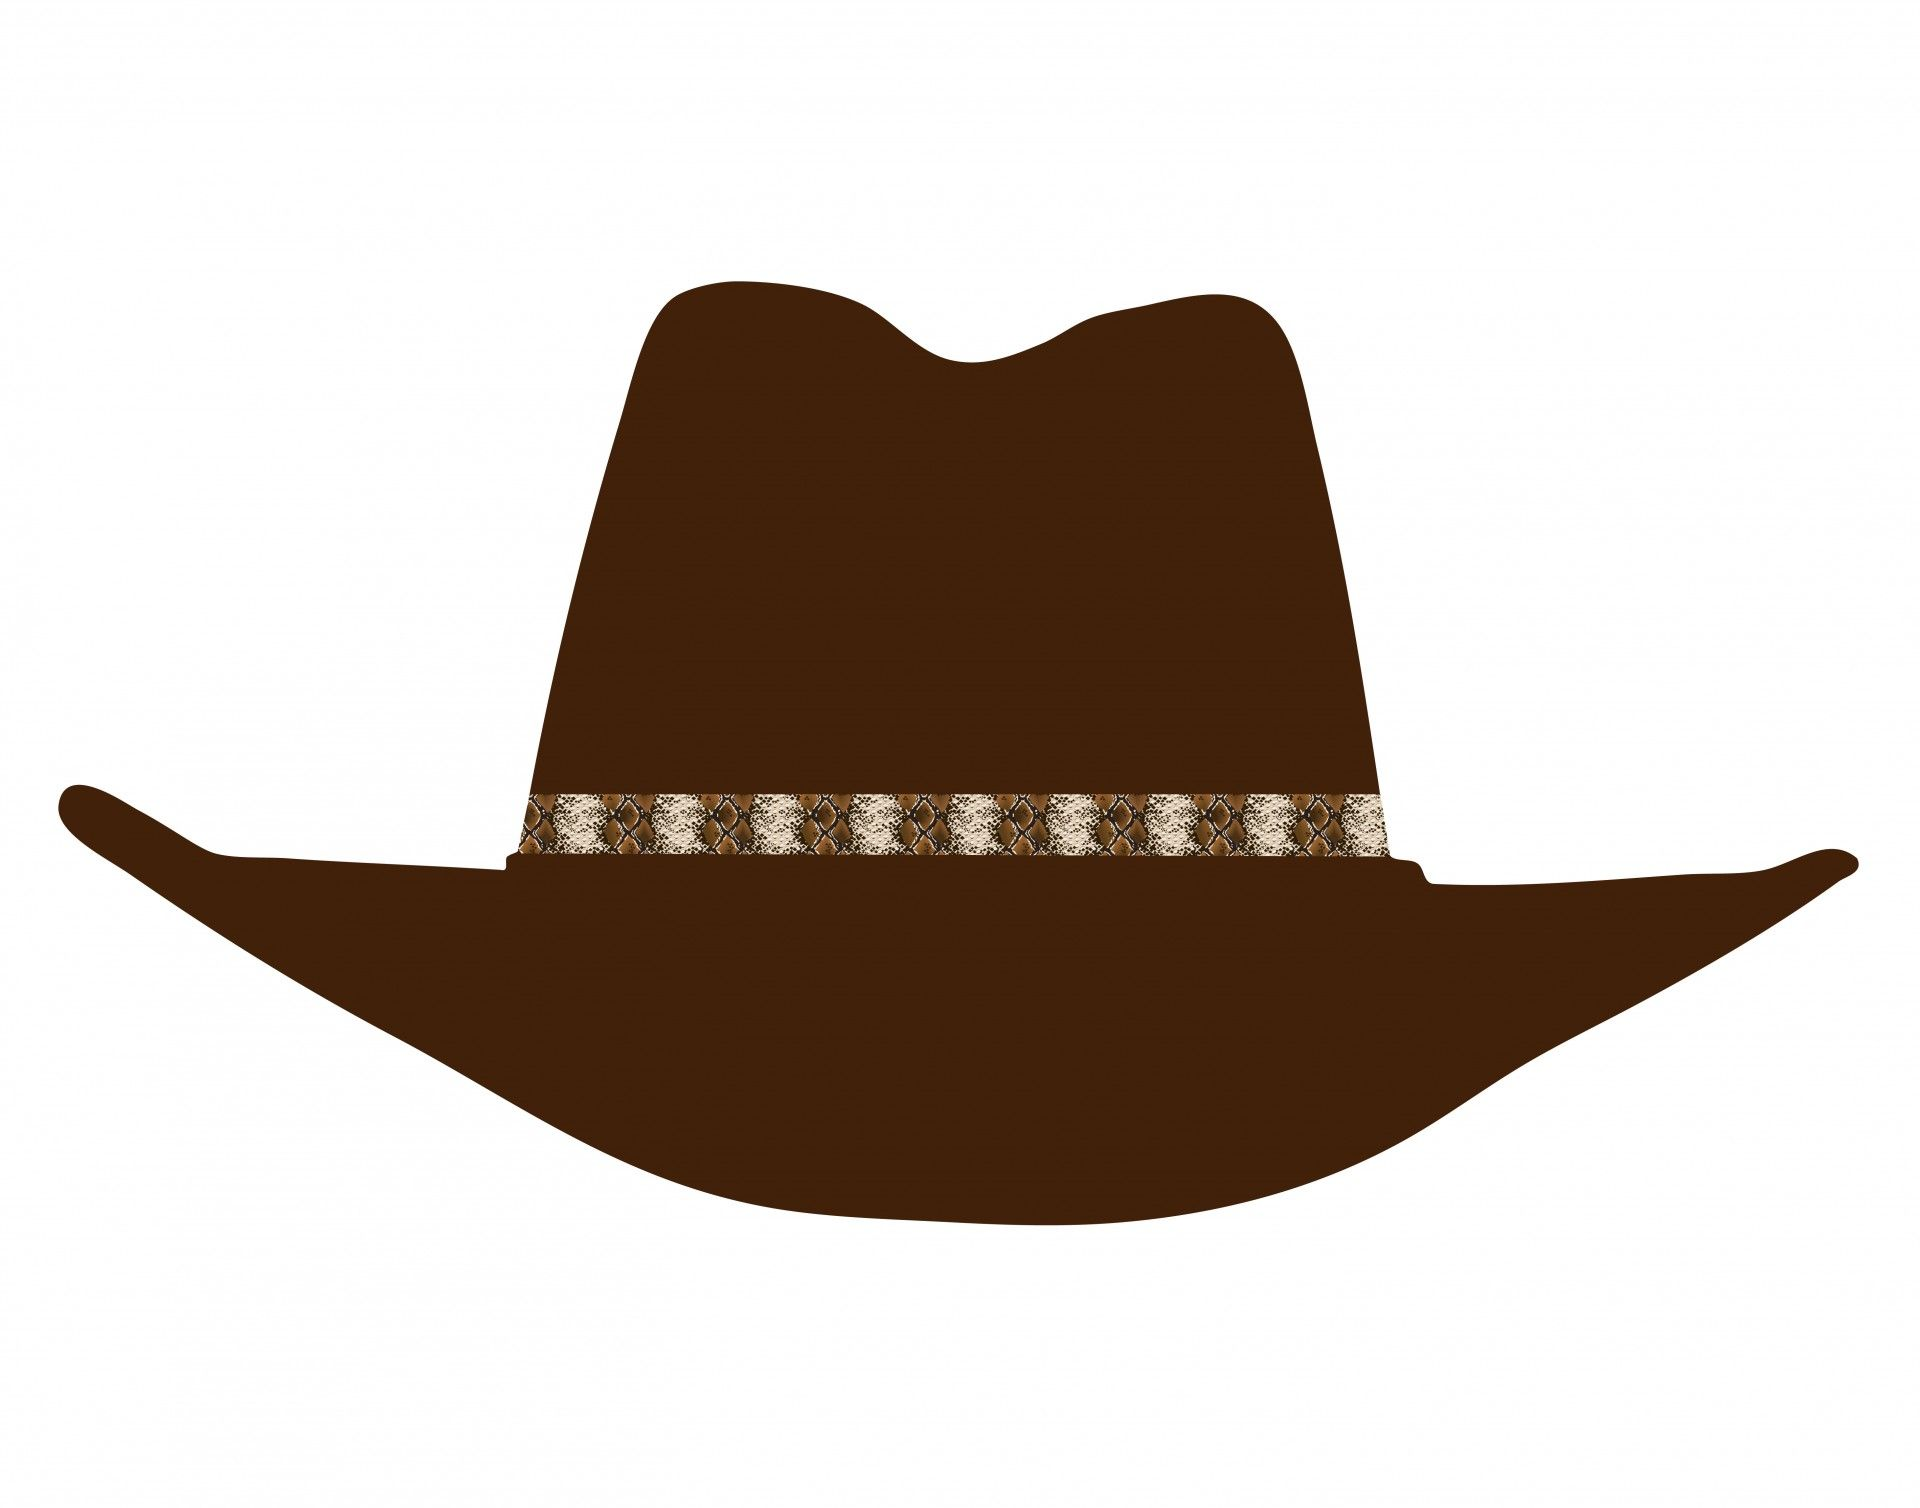 Cowboy Hat Clip-art | Illustrations.... Hats, shoes, etc. | Cowboy ... clip royalty free download